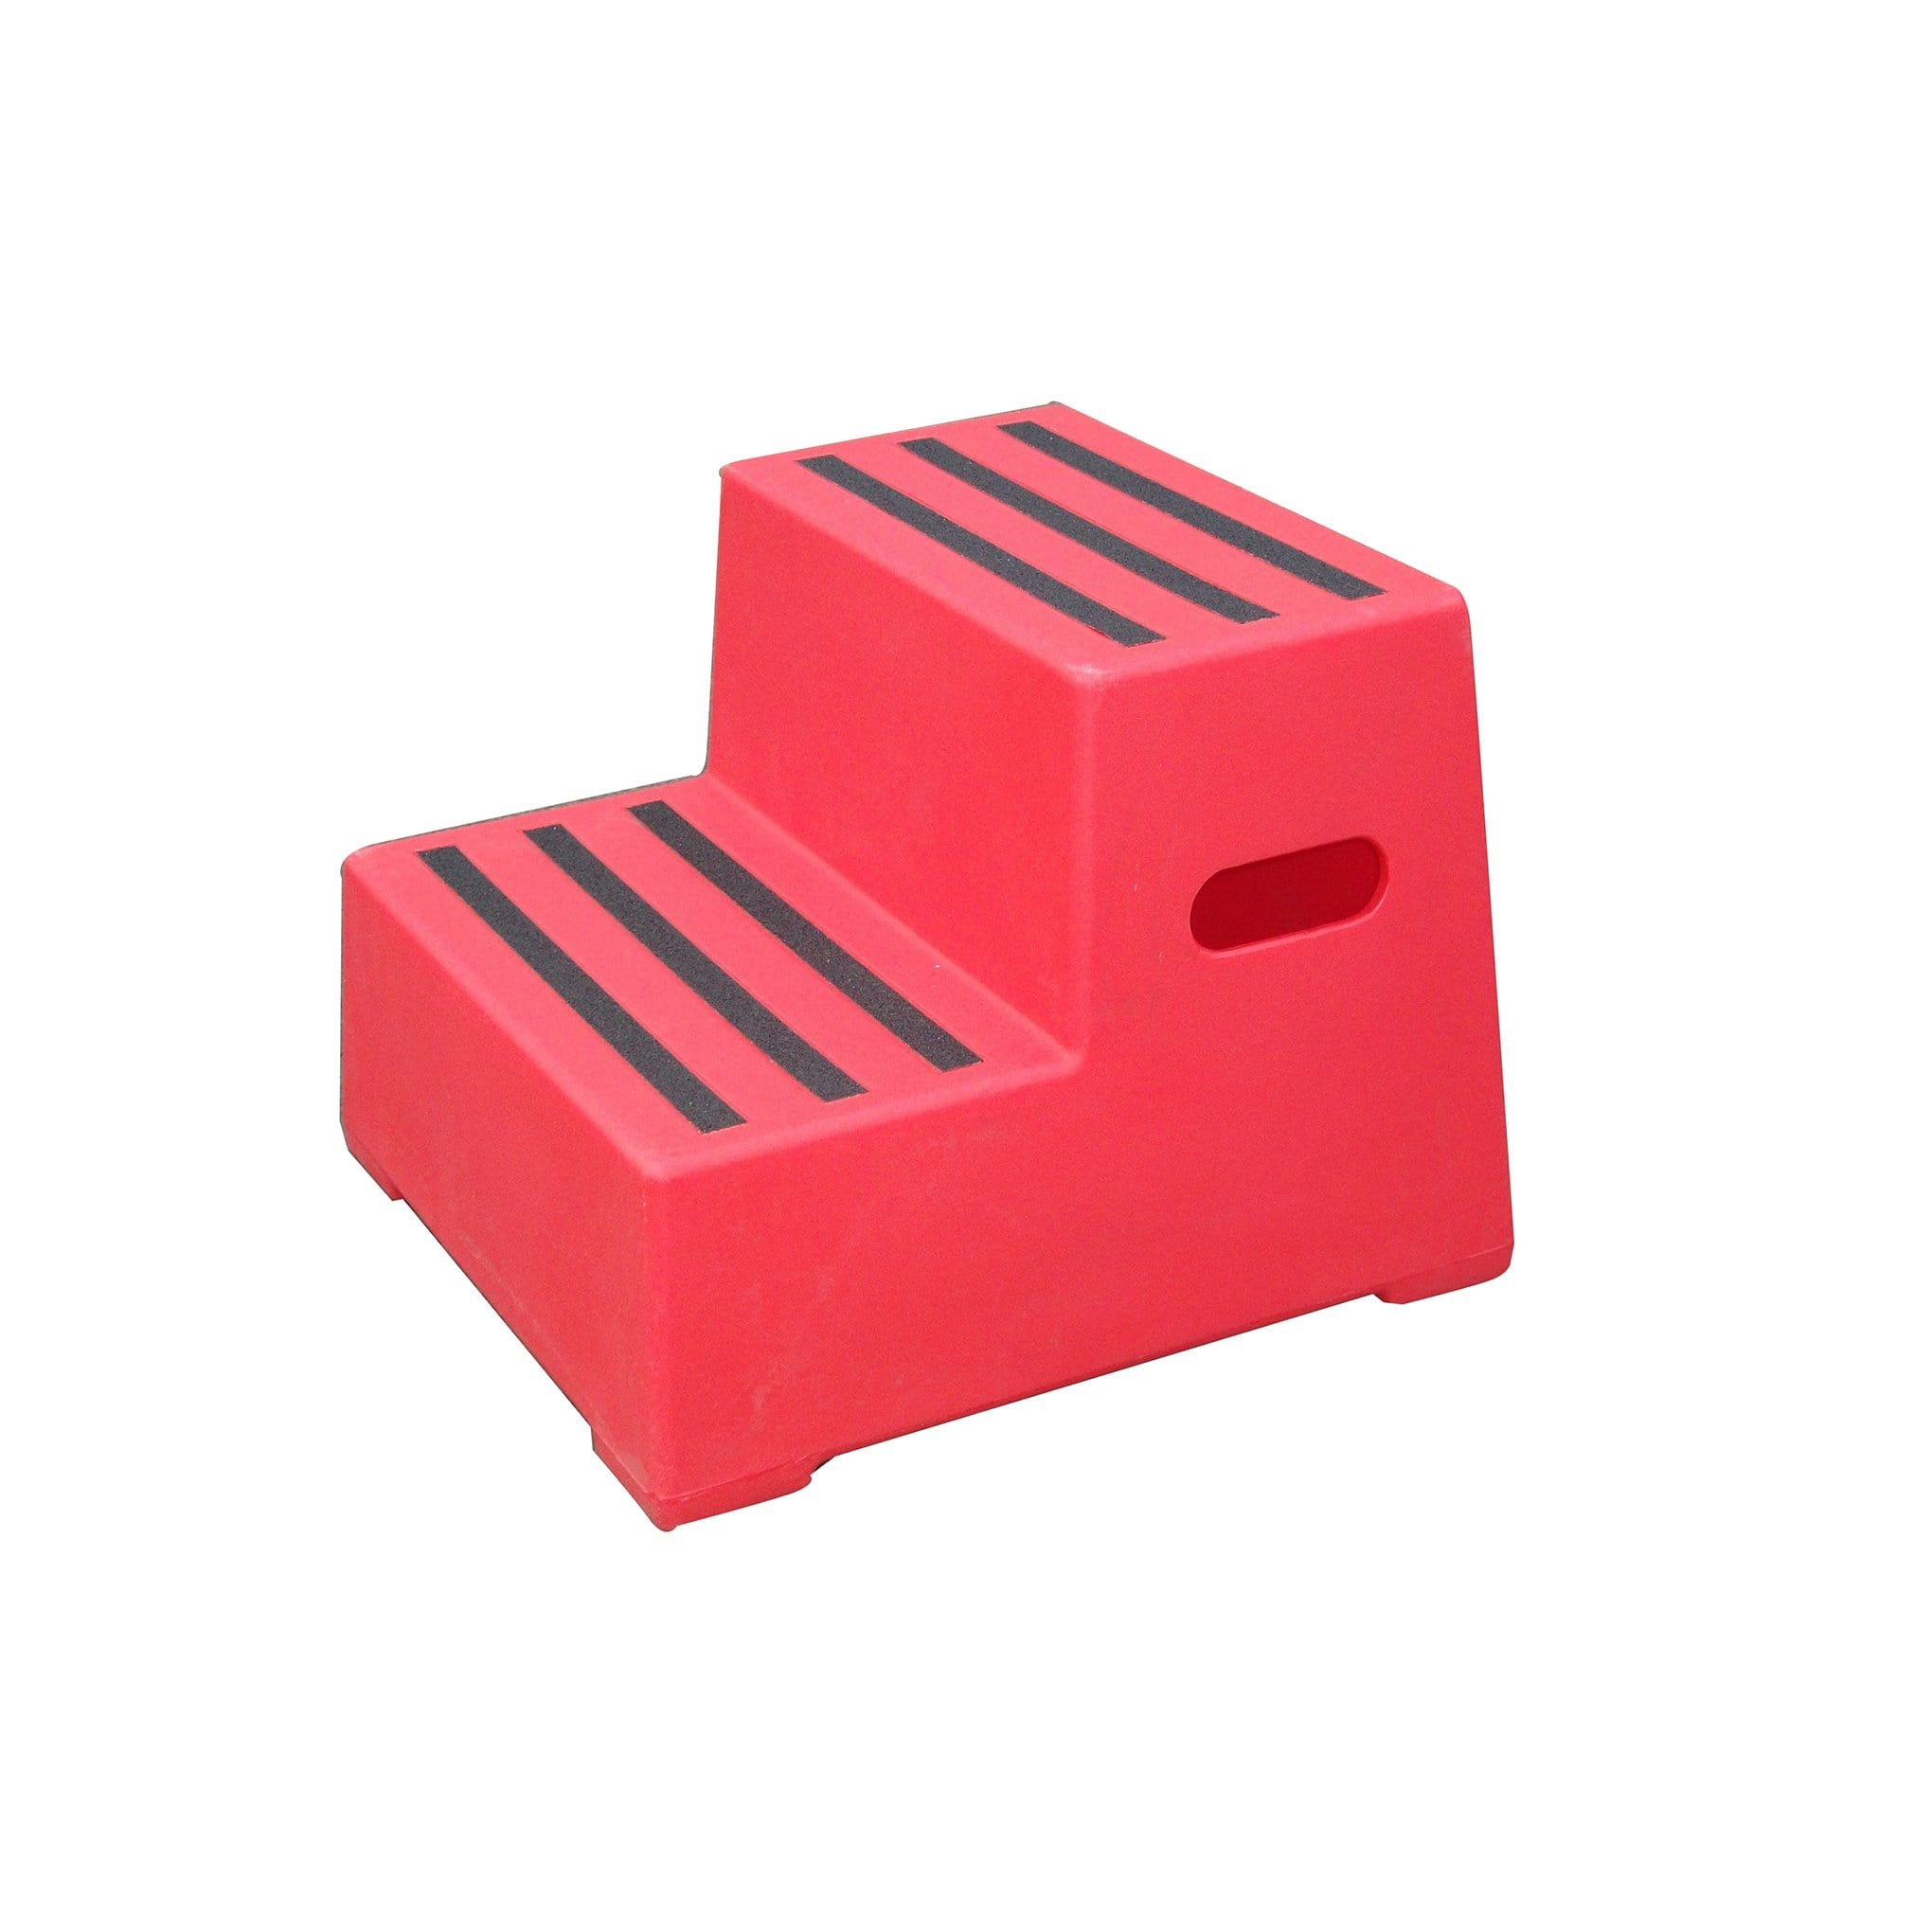 Classic Showjumps Premium Two Tread Mounting Block in Red